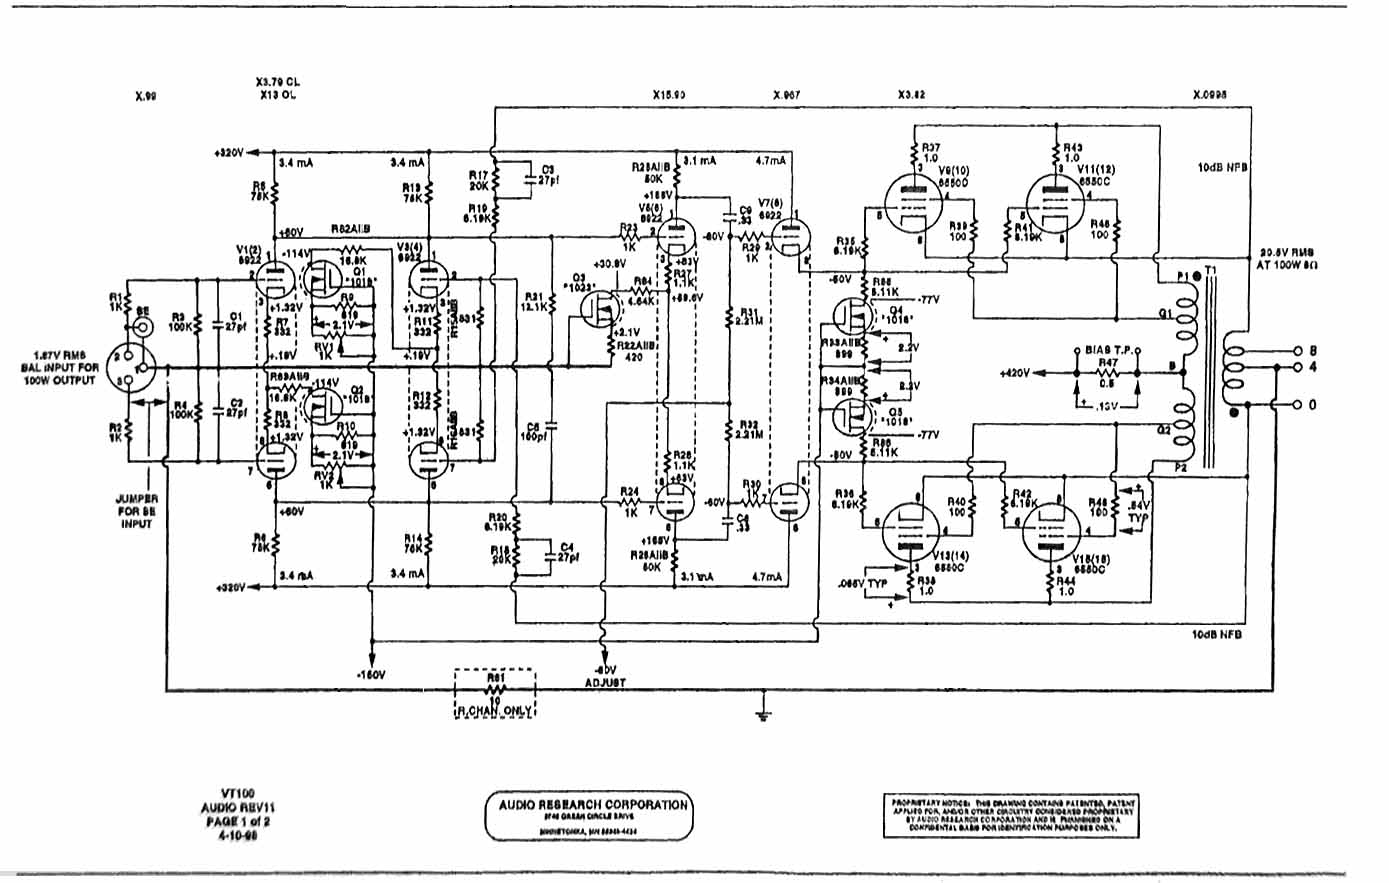 Hiwatt Dr 103 Experts Please Help With 2 Hole Vs 4 Hole Pre  Circuit additionally YWMzMCBzY2hlbWF0aWM besides Files likewise 211517 Attic Find also Voxcircuits. on vintage marshall s schematic